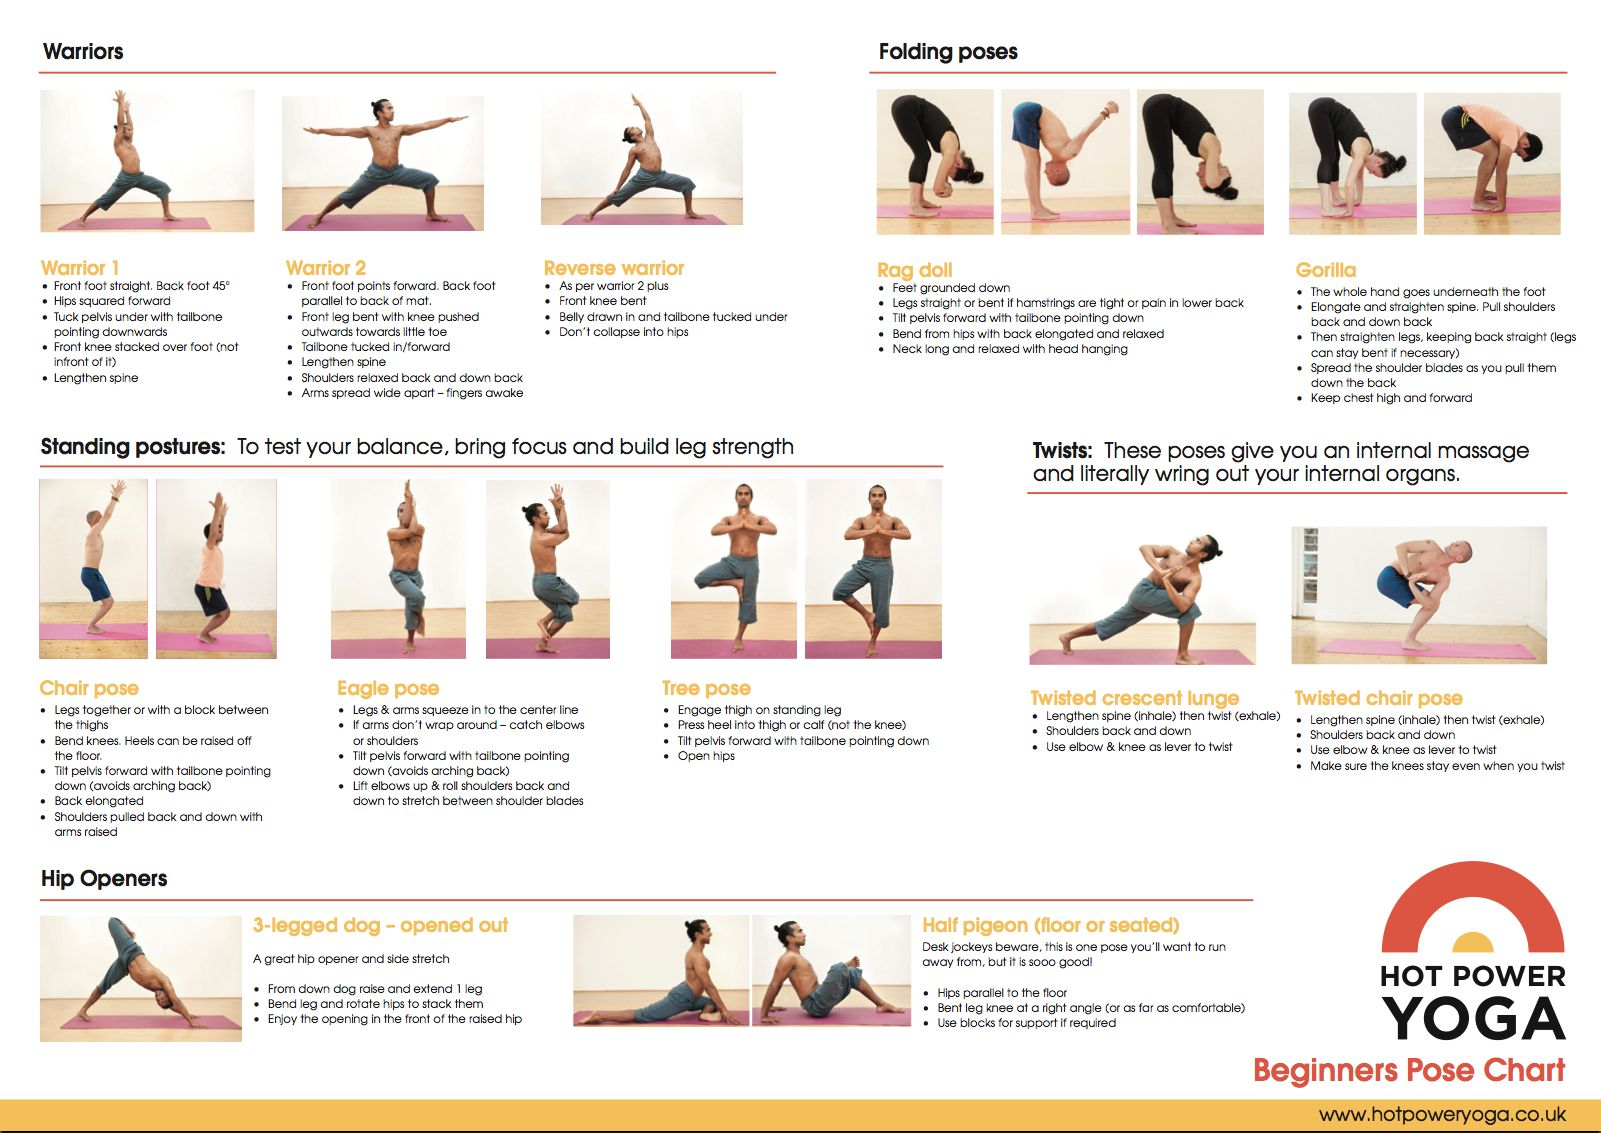 Yoga Poses For Beginners At Home Chart